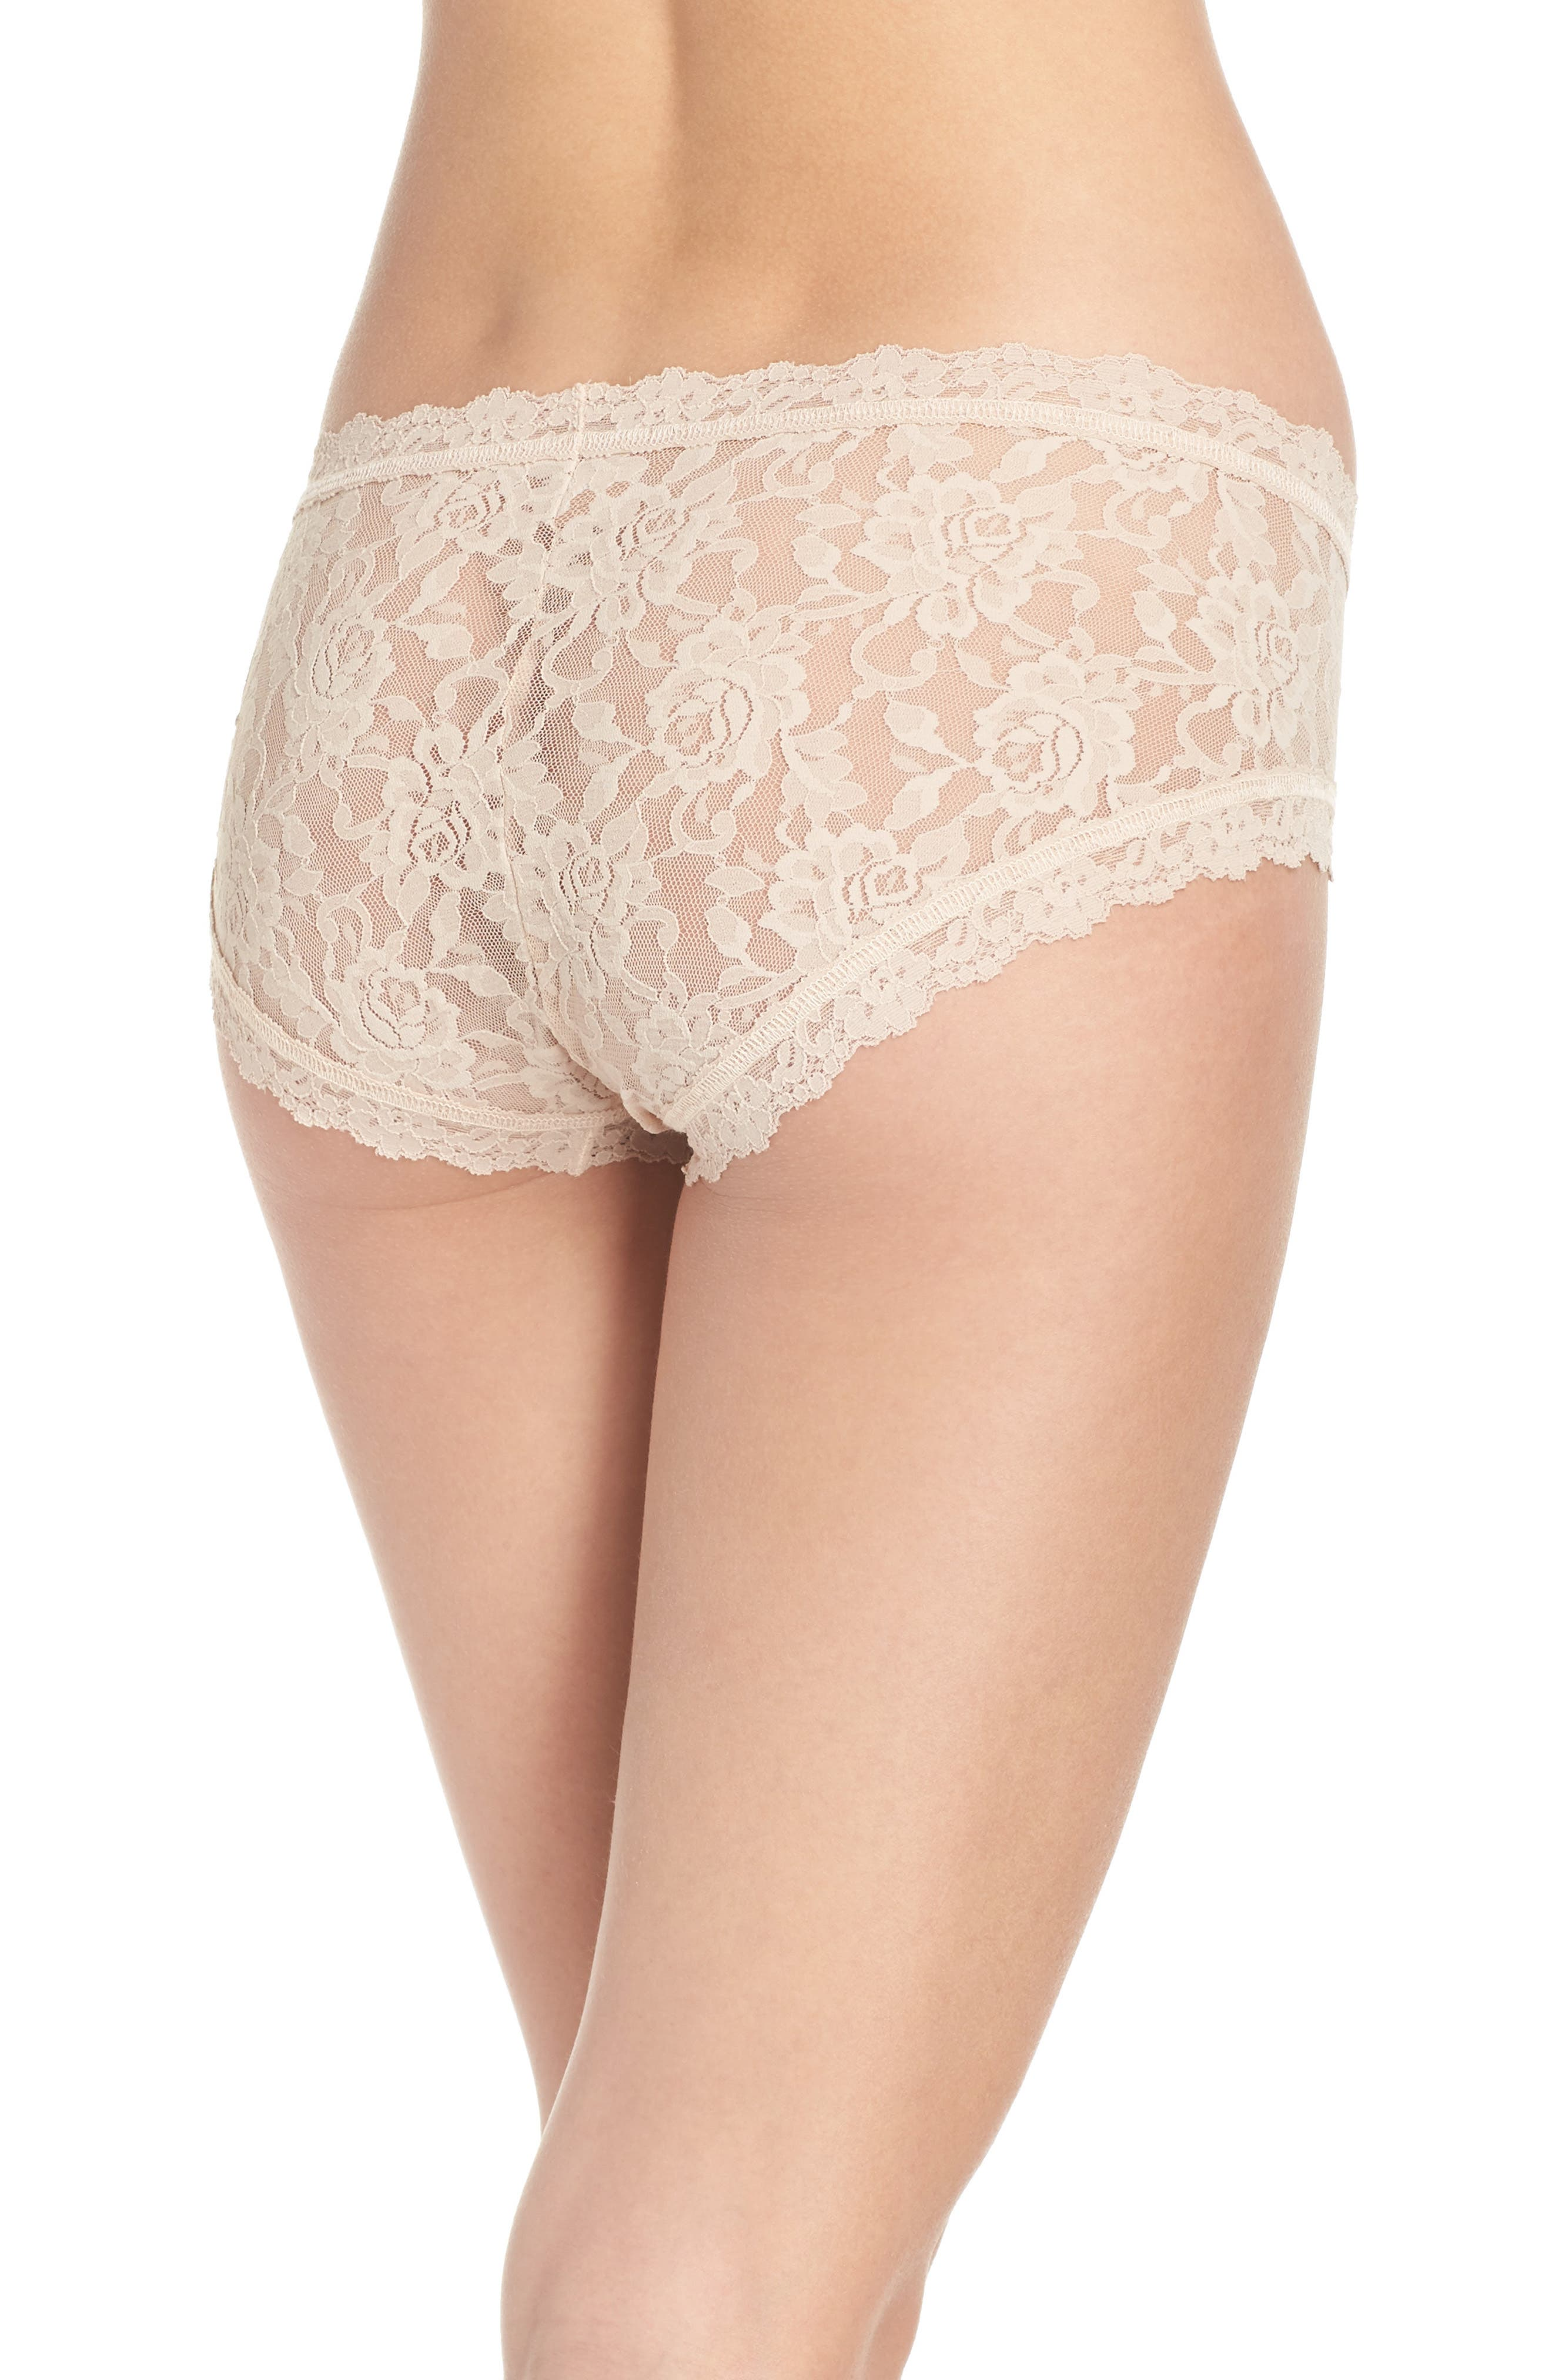 Floral Stretch Lace Girlkini,                             Alternate thumbnail 5, color,